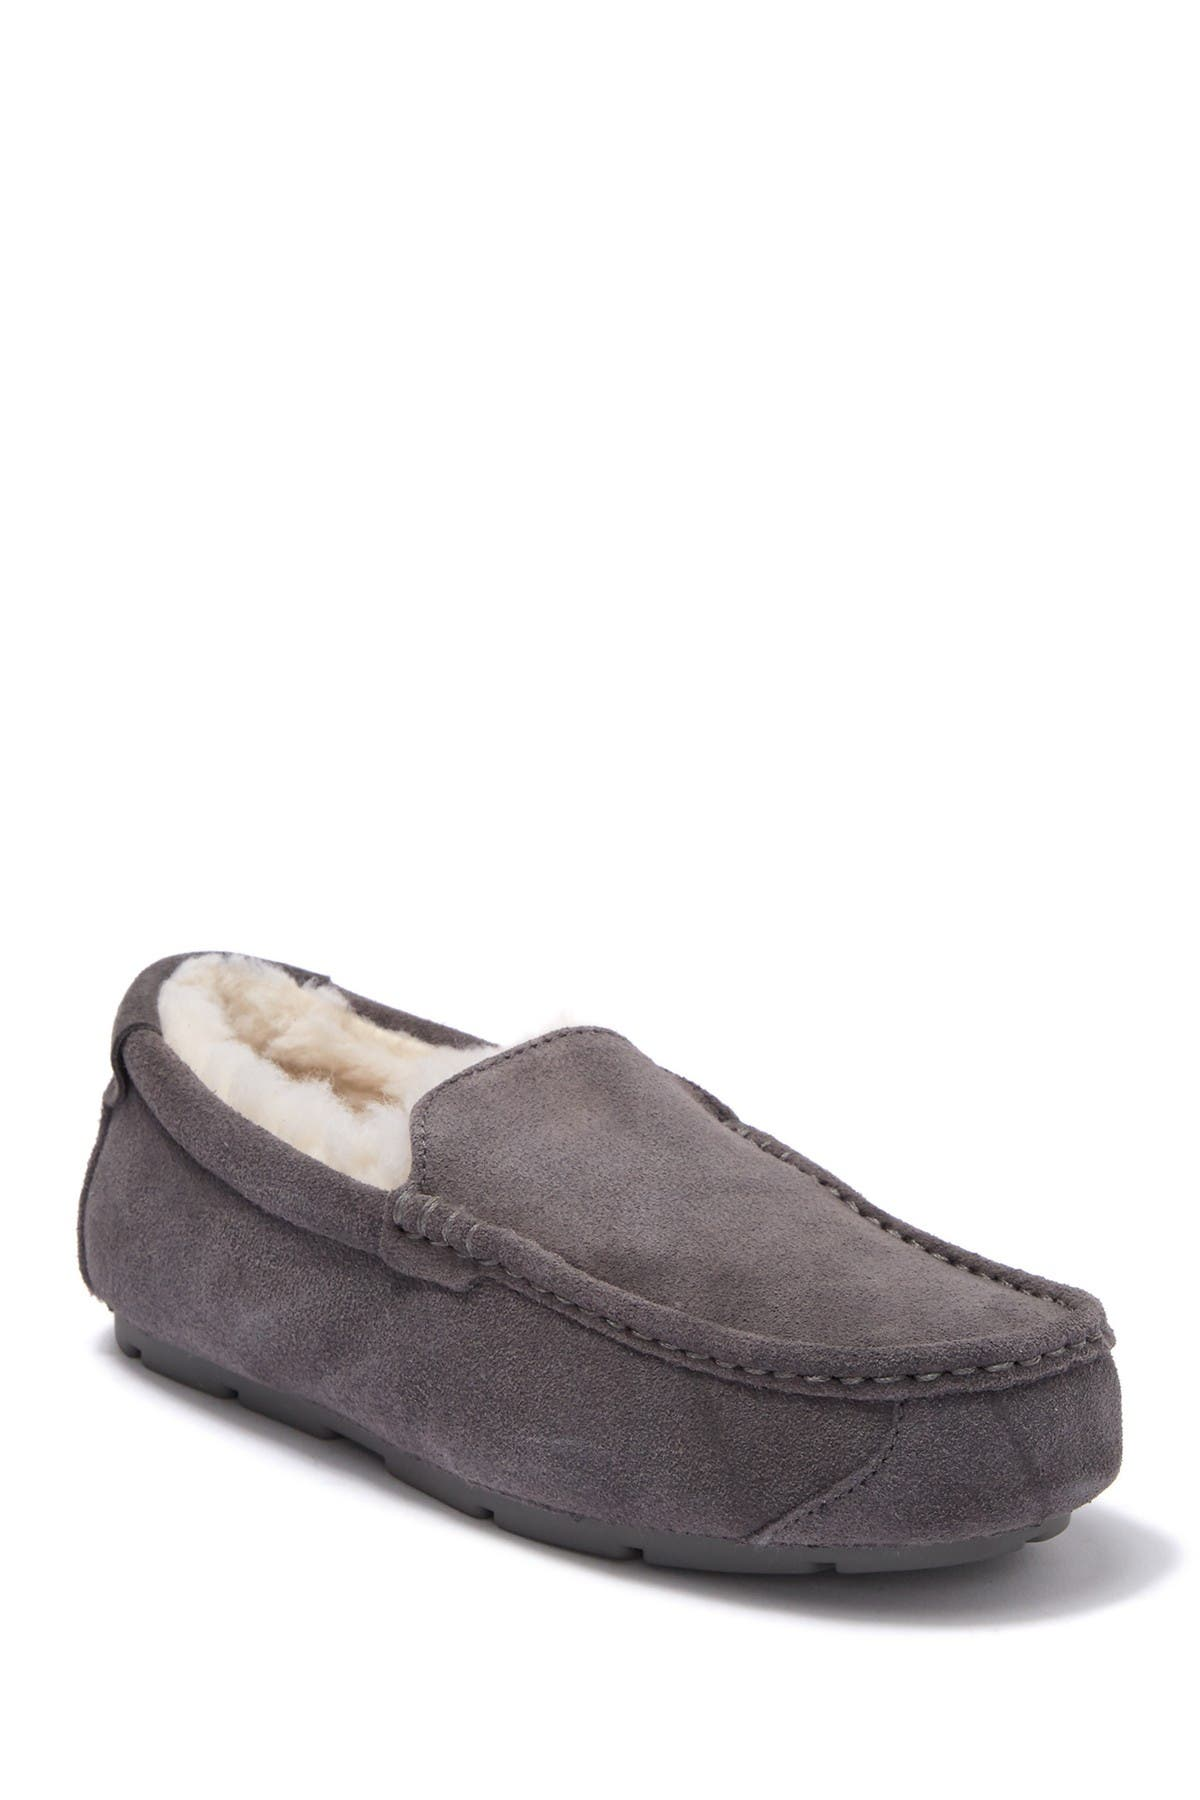 Image of KOOLABURRA BY UGG Tipton Faux Fur Lined Moccasin Slipper